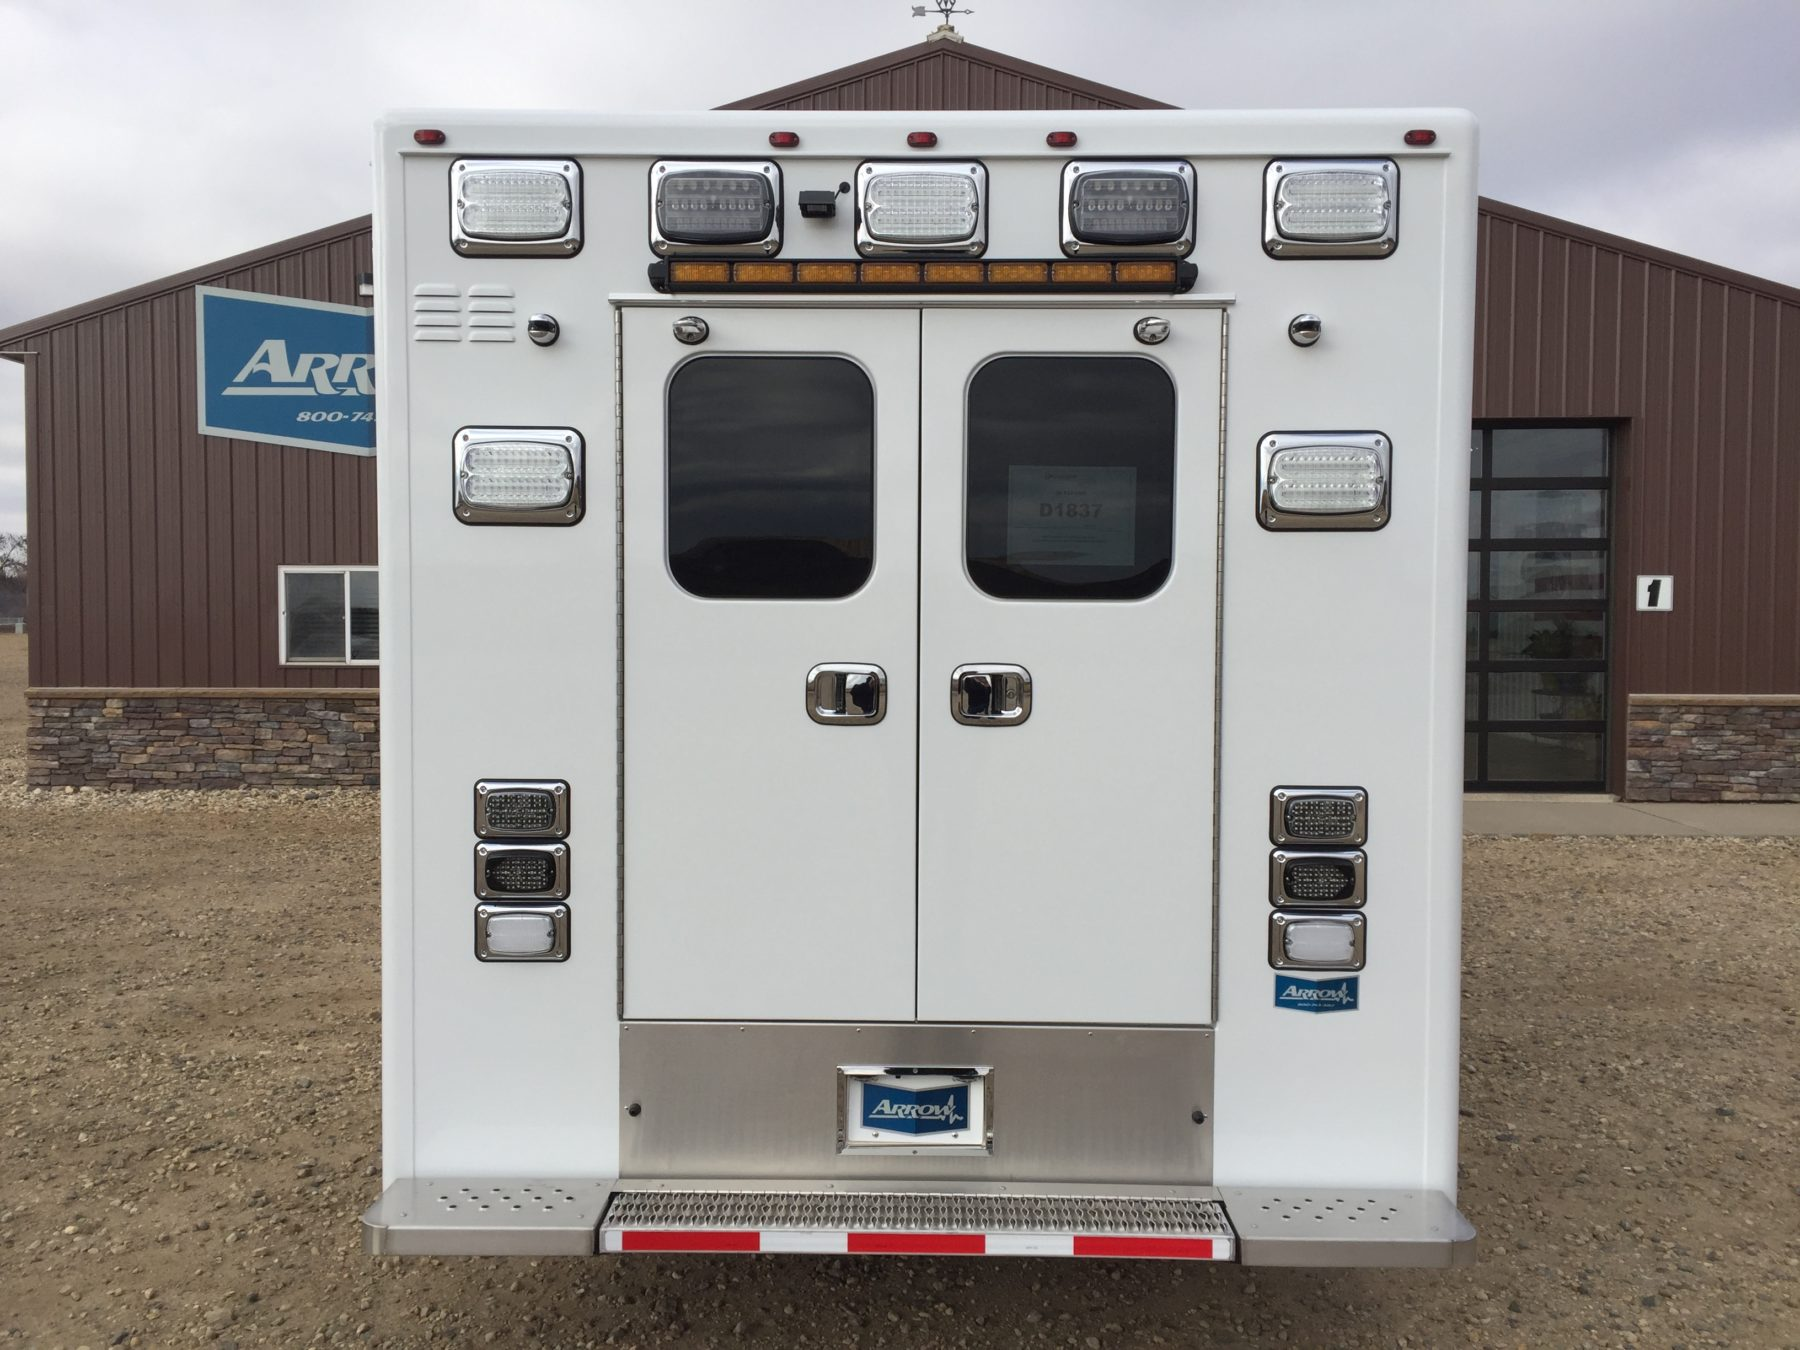 2017 Ram 4500 4x4 Heavy Duty Ambulance For Sale – Picture 8